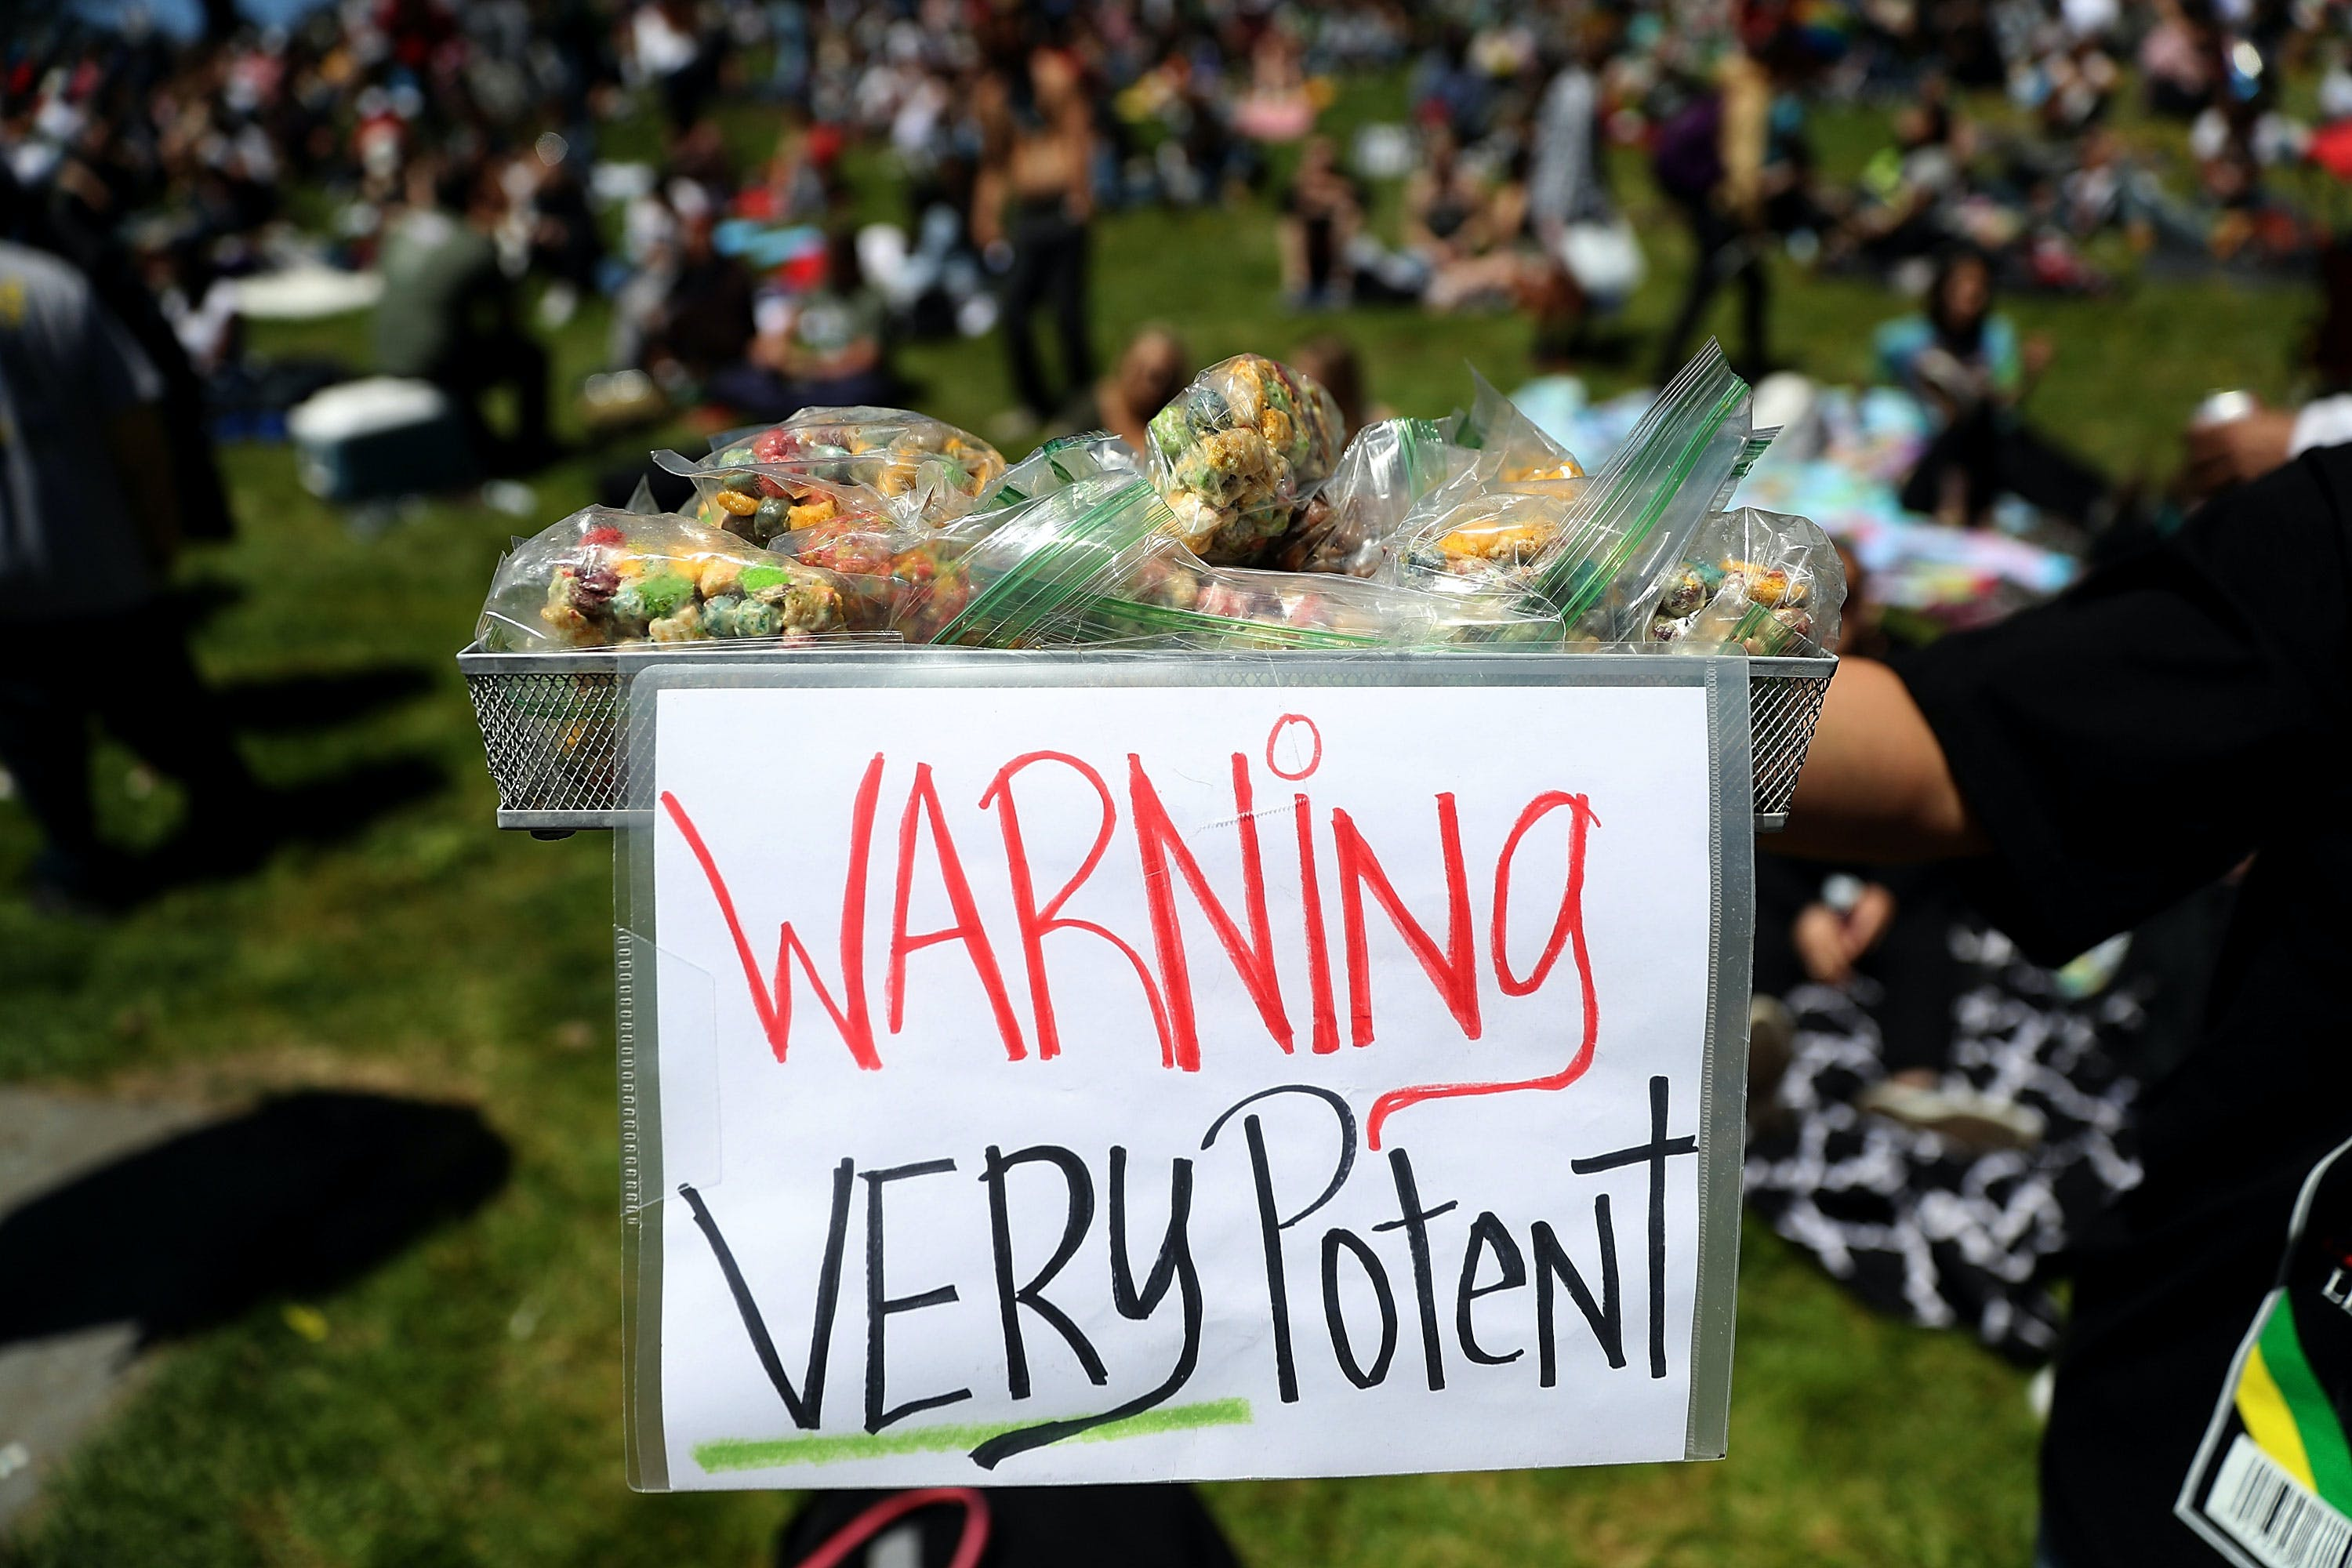 Canada Finally Legalized But A Big Question Remains Are Edibles Legal In Canada  Cannabis Consumers Would Rather Pay a Premium Than Buy Product From the Black Market: Study